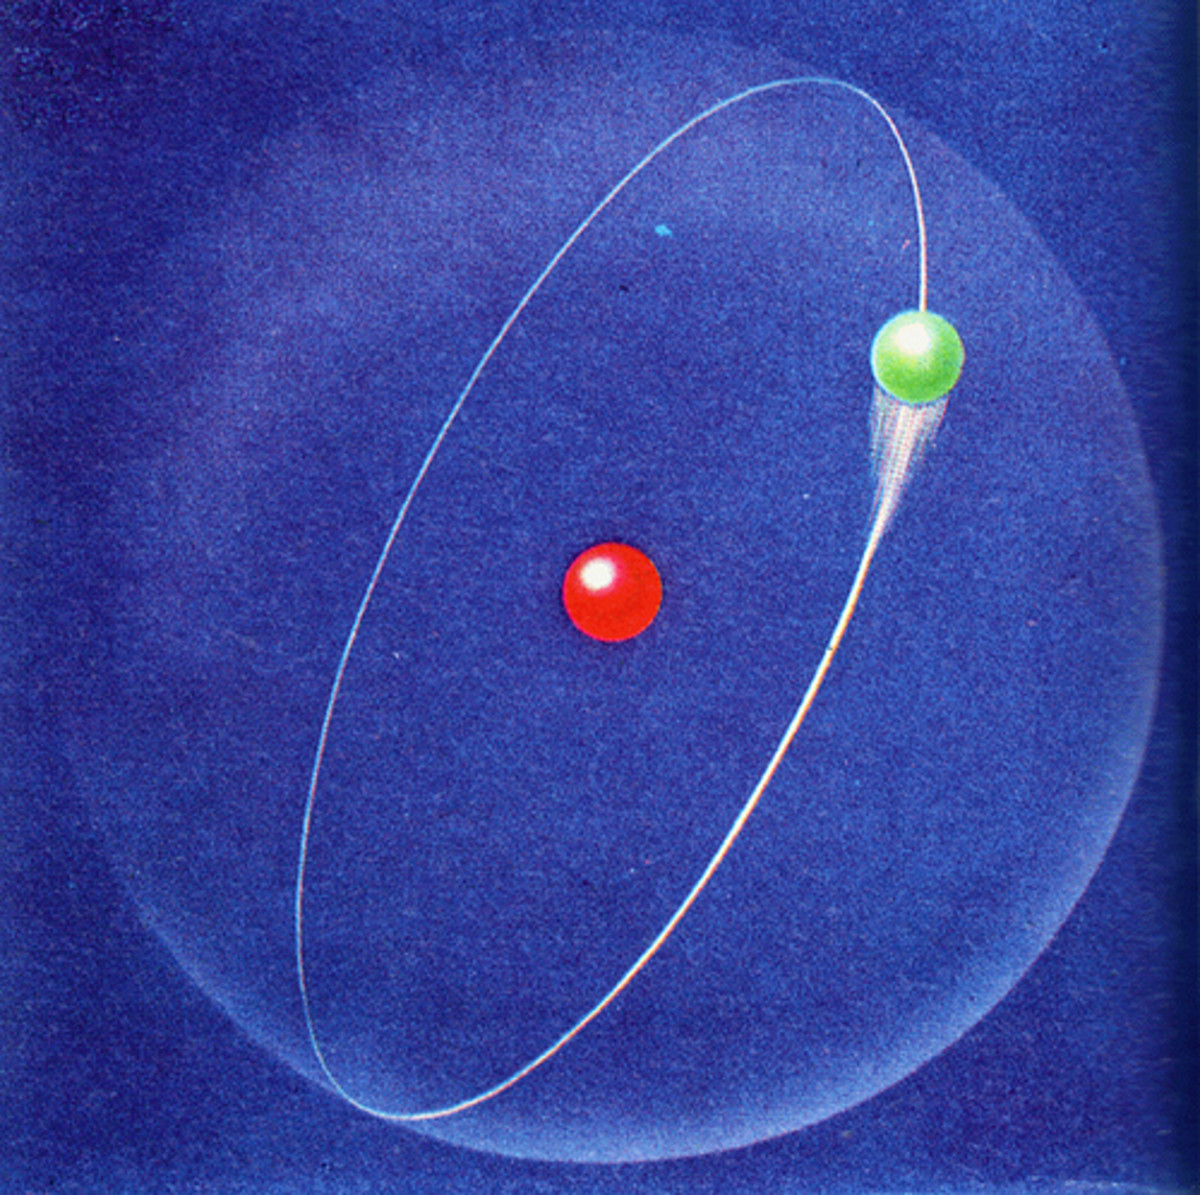 Conceptualization of a hydrogen atom.